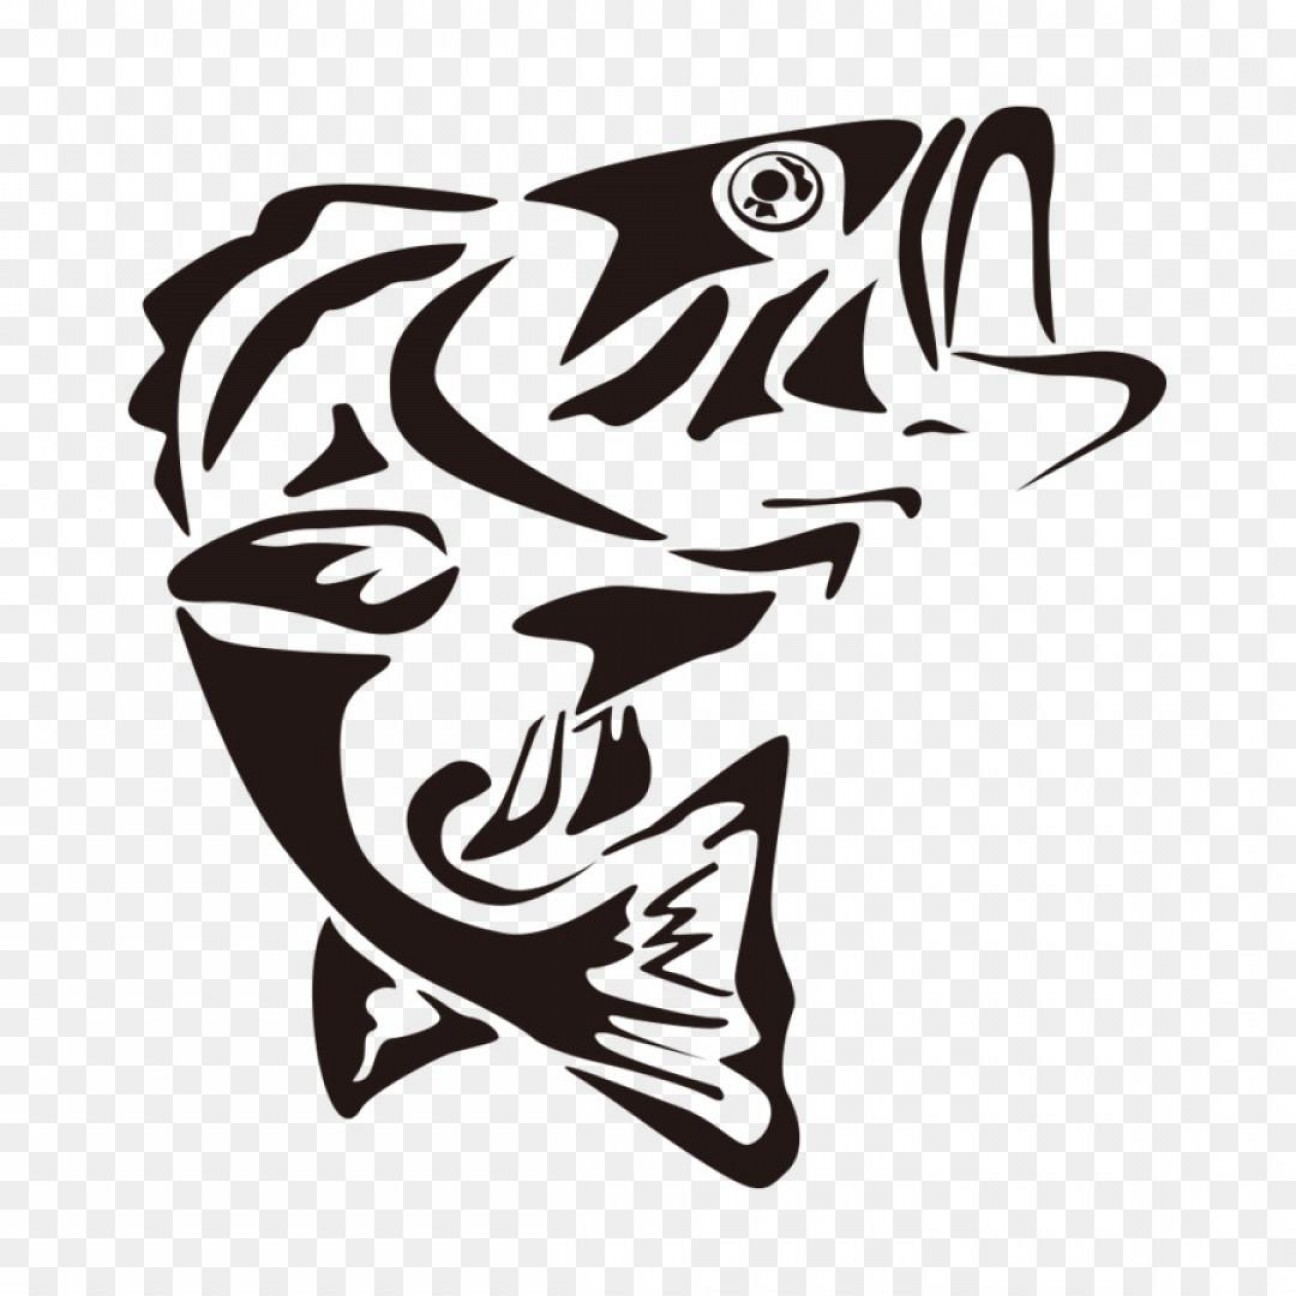 Largemouth Bass Silhouette Vector: Top Largemouth Bass Outline Vector Design